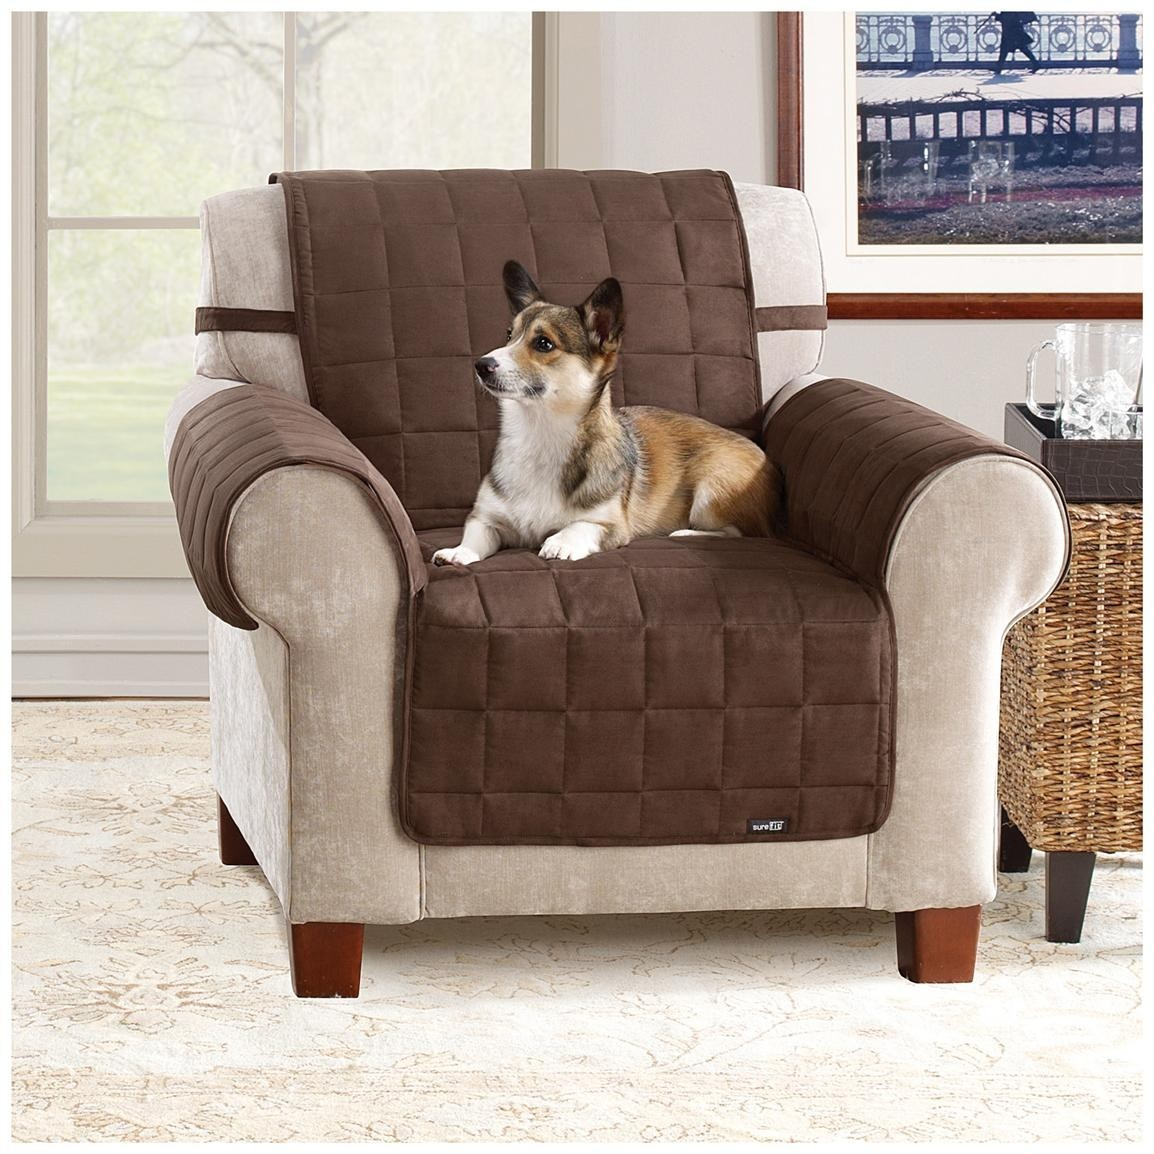 Chair Cover Recliners Slipcover Chair Protector For Pets Brown